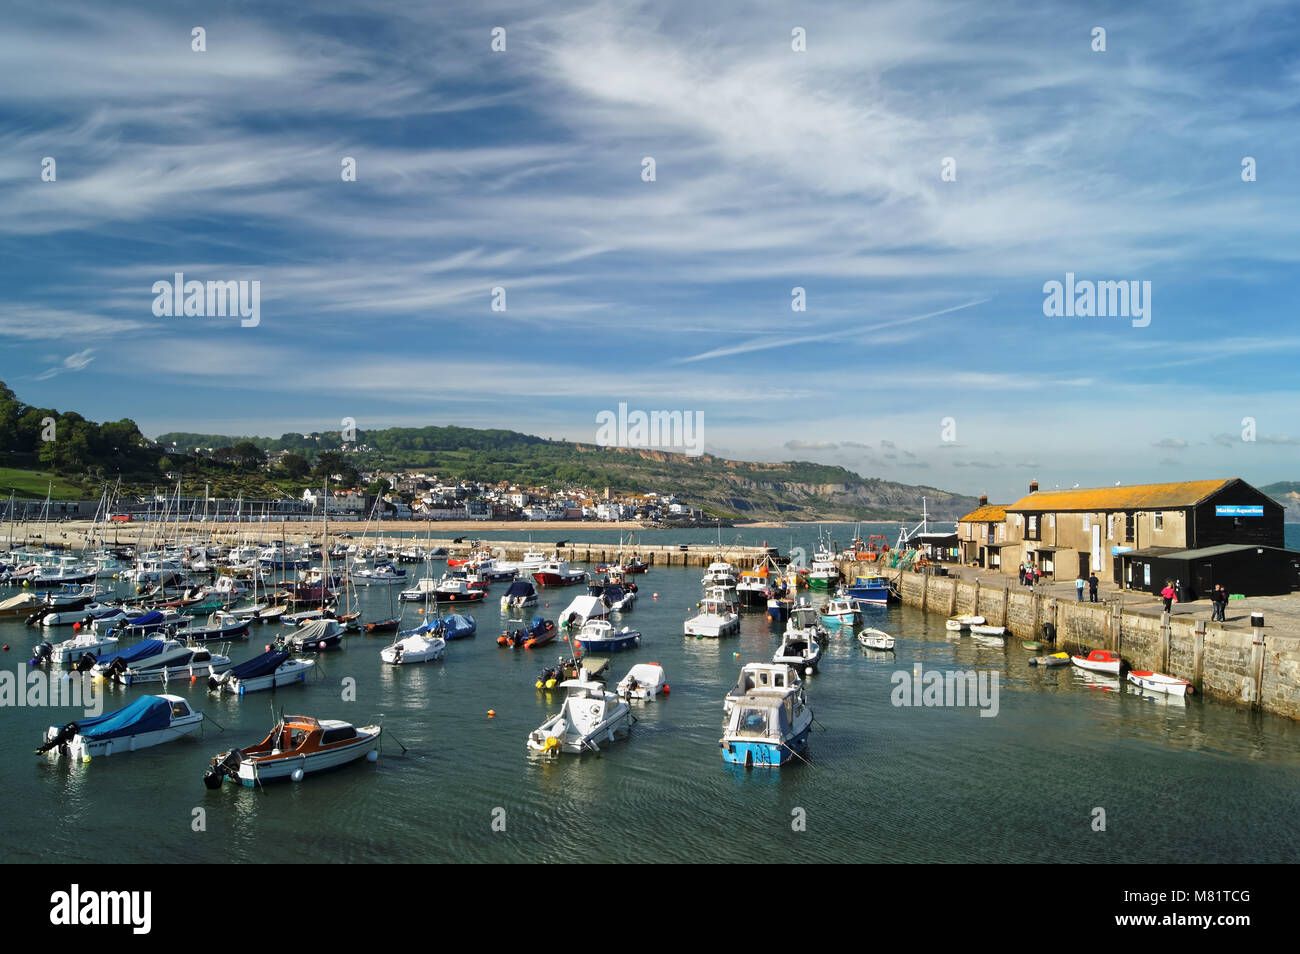 UK,Dorset,Lyme Regis,The Harbour and Aquarium from The Cobb wall,with Town in the distance. - Stock Image